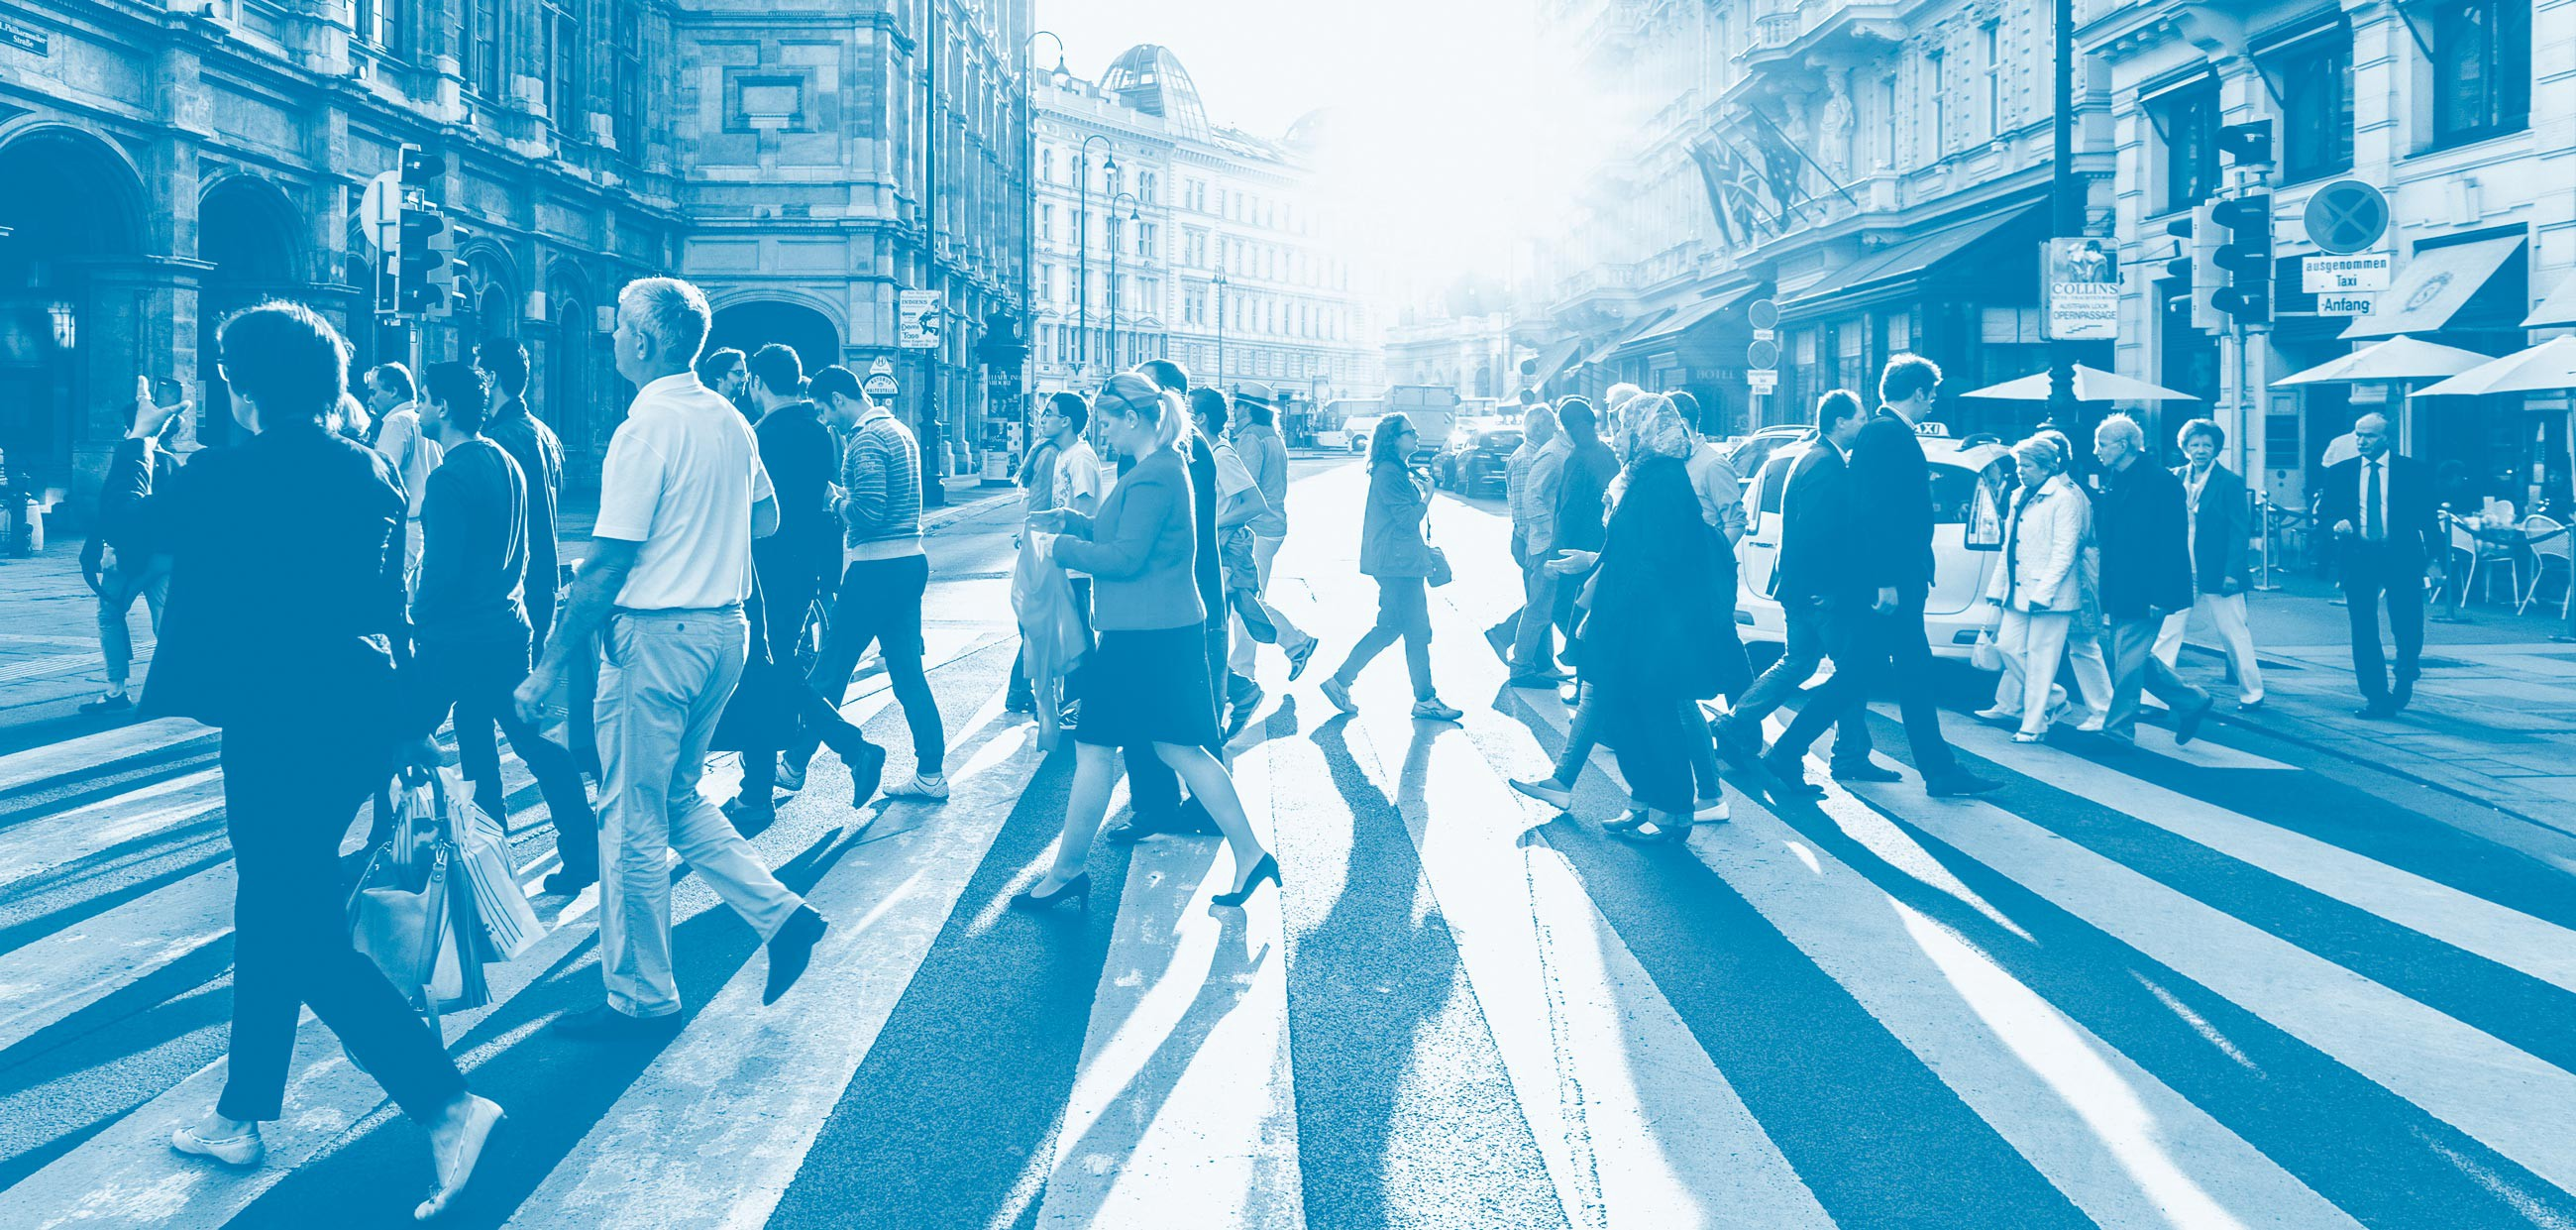 Photograph shows a lot of different types of people walking across a main road crossing using a light blue duotone